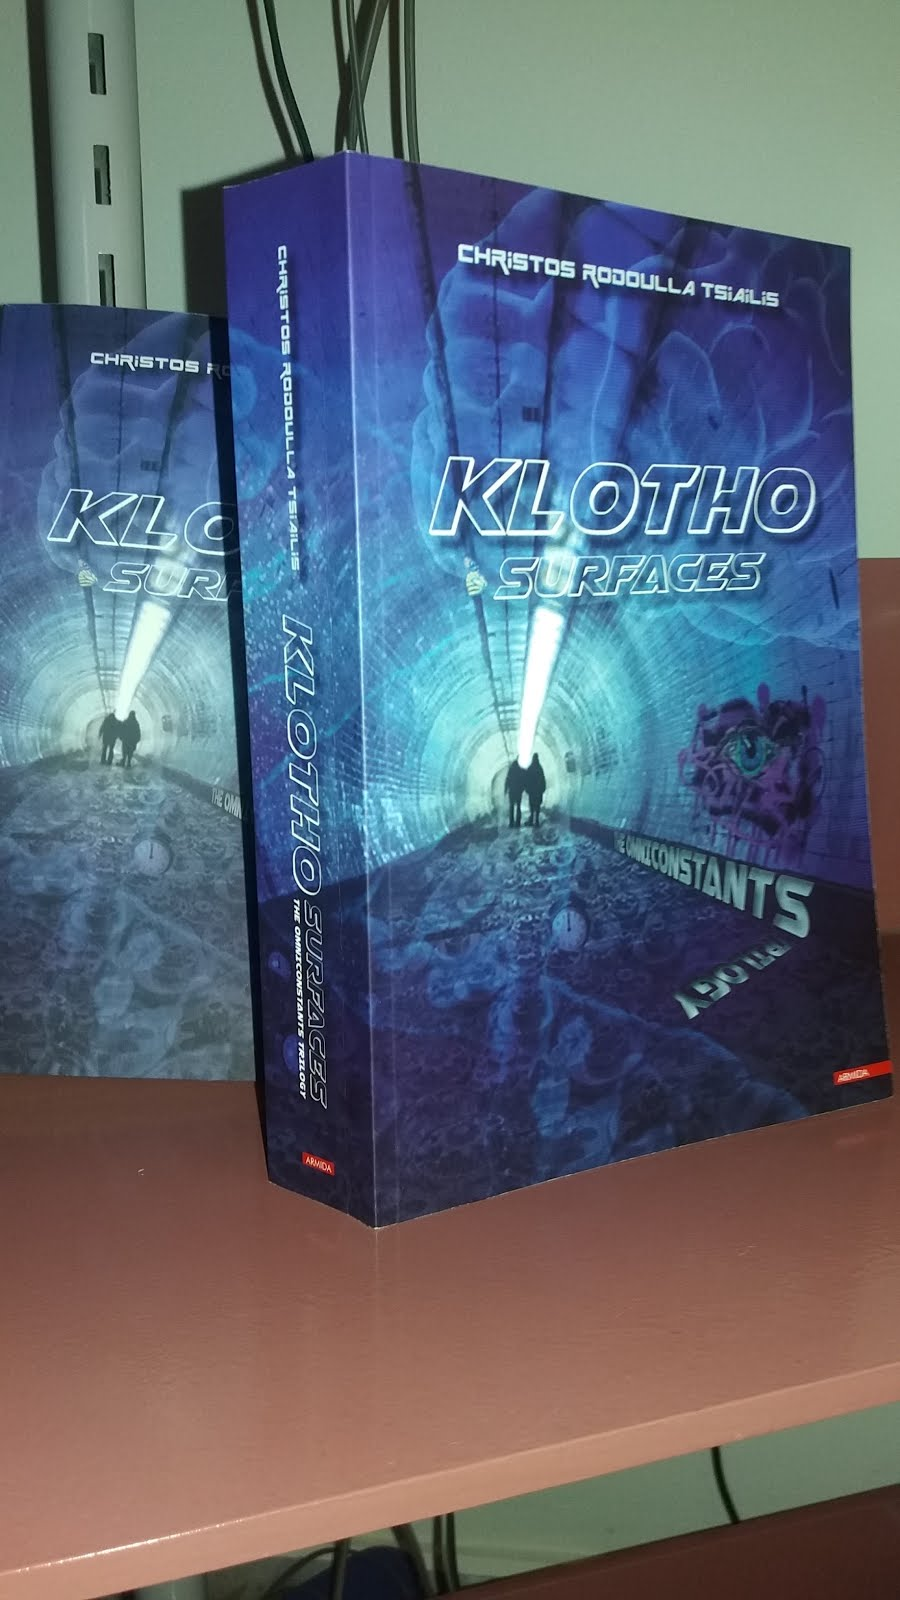 Klotho Surfaces - The Omniconstants Trilogy